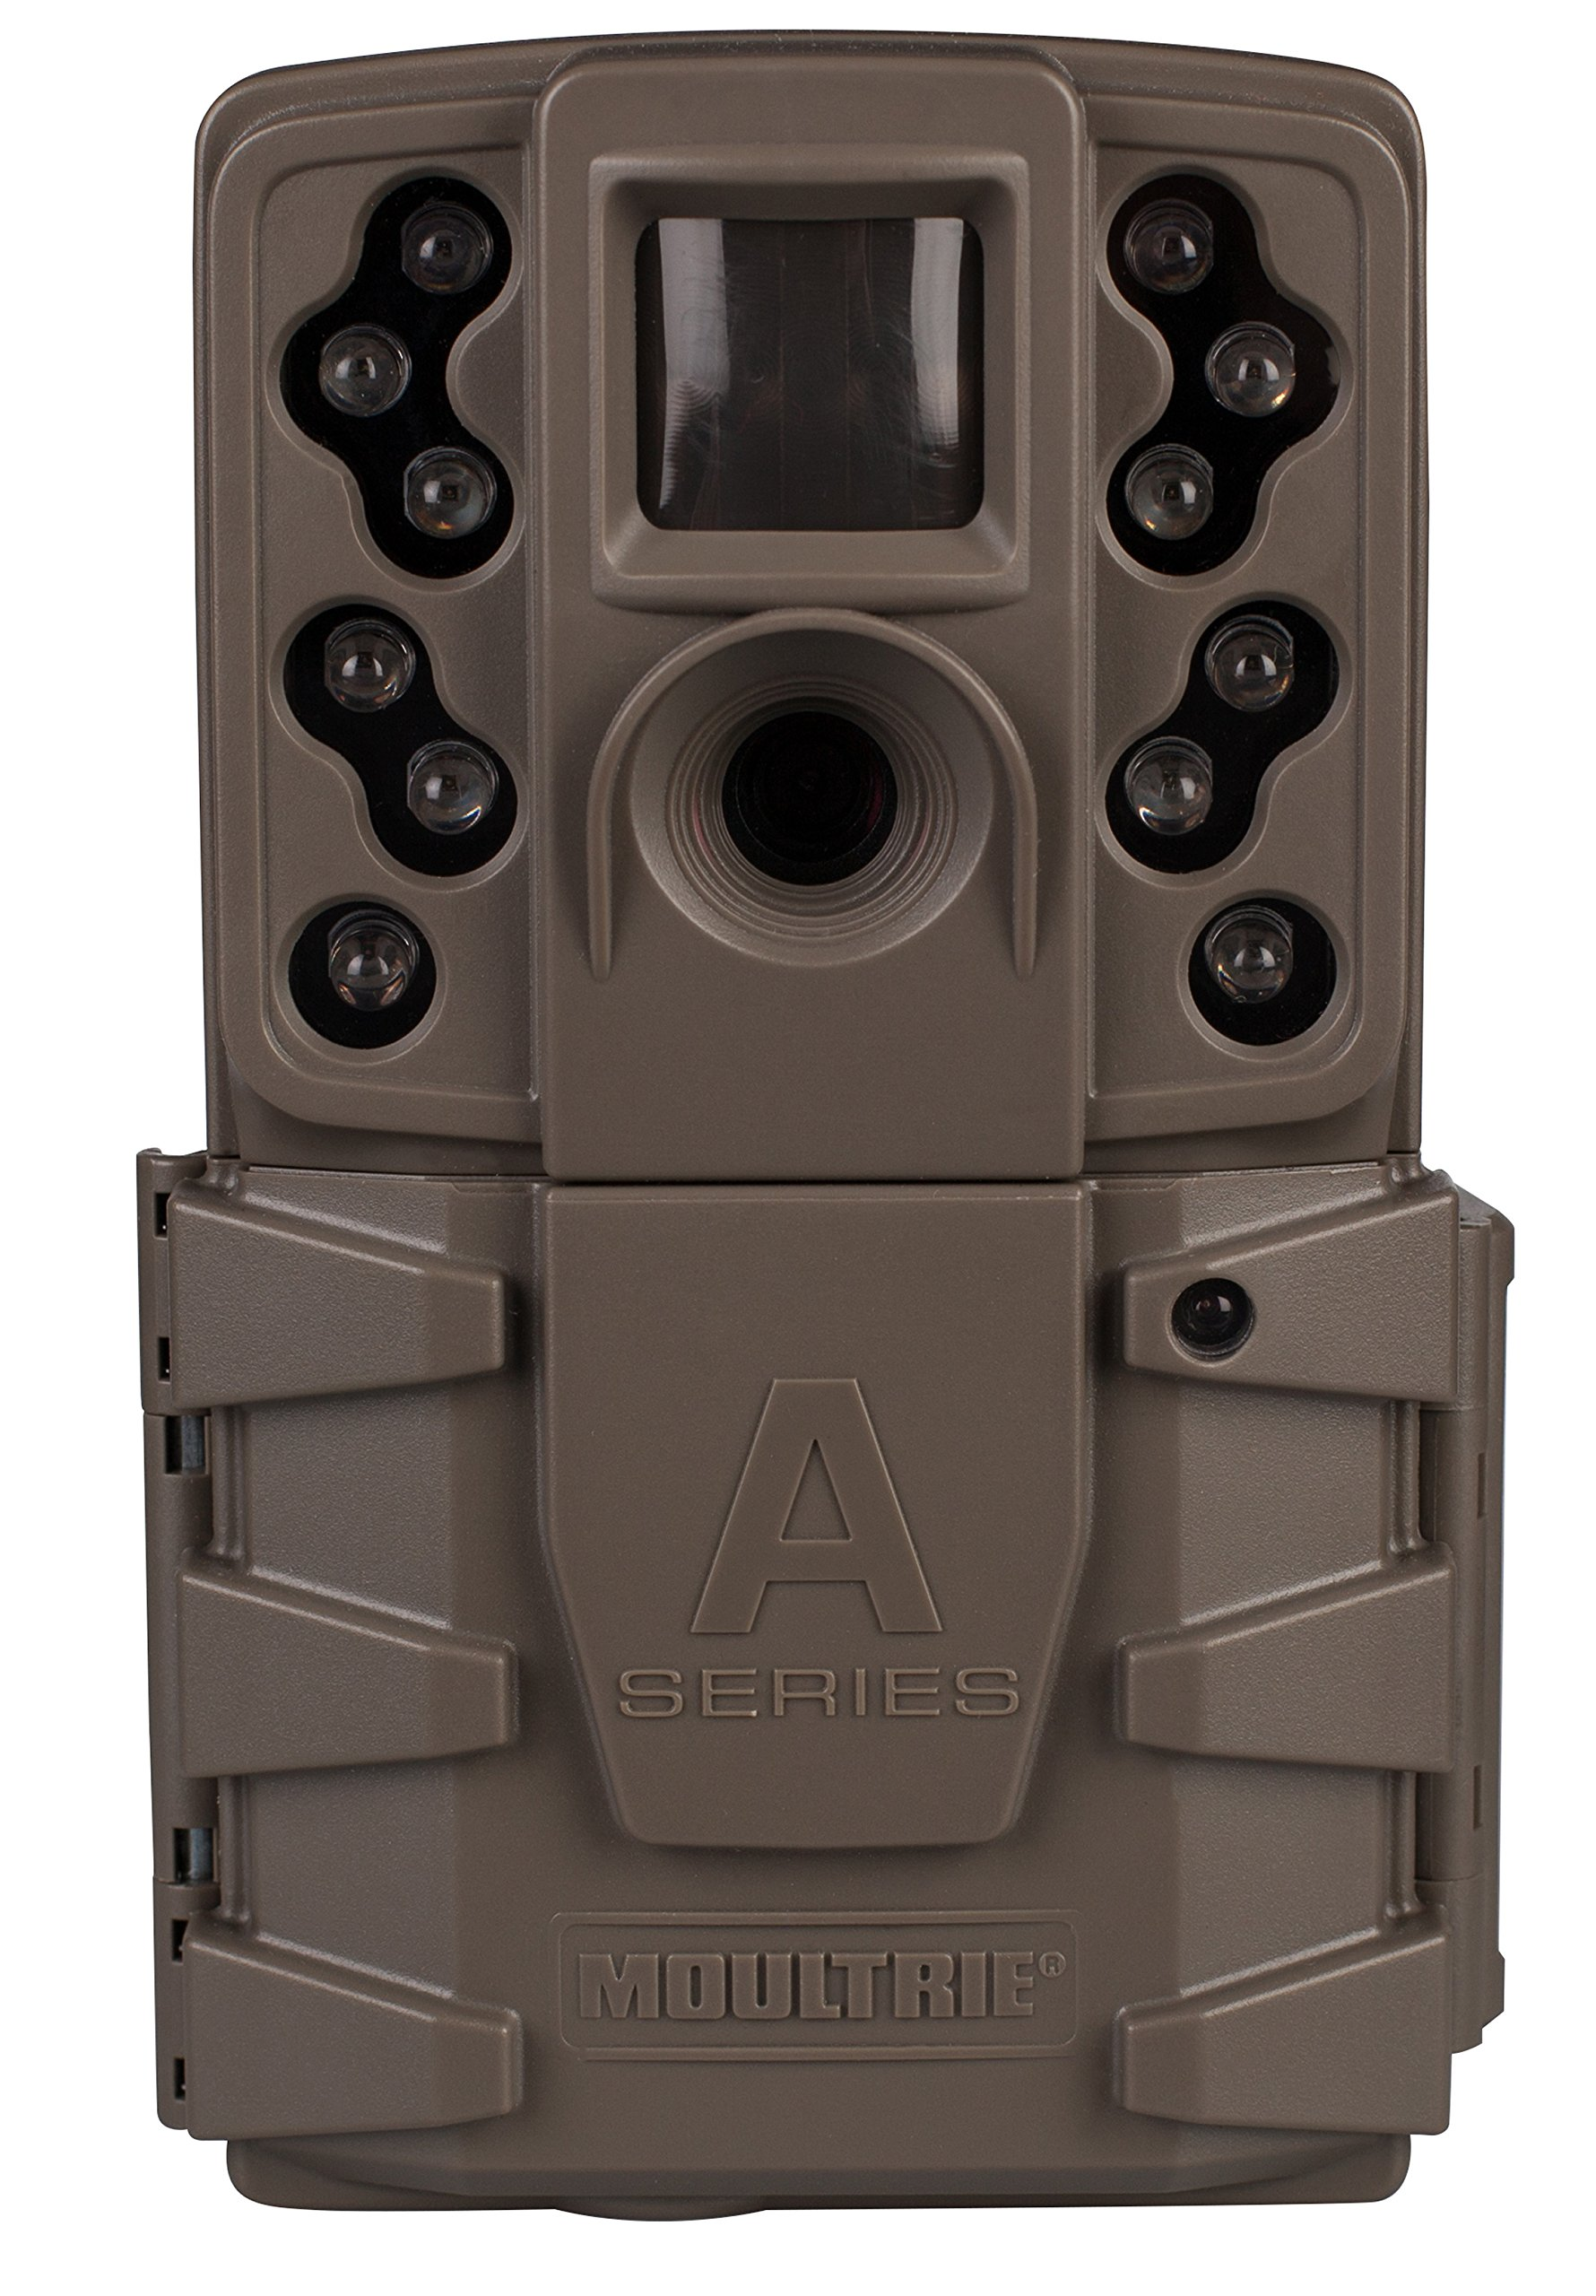 Moultrie A-40 Game Camera (2018) | A-Series| 14 MP | 0.7 S Trigger Speed | 720p Video | Compatible Mobile A-40 (2-Pack)